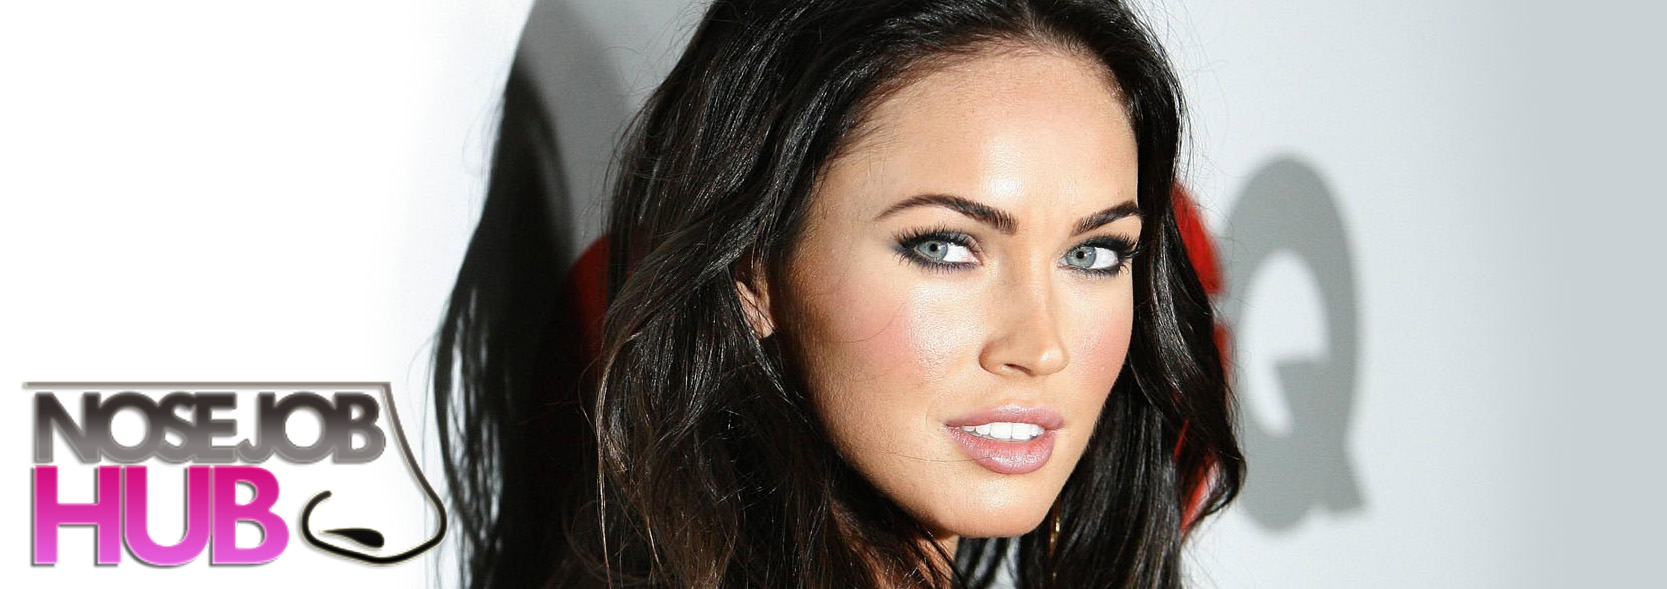 Megan Fox Before and After Nose Job